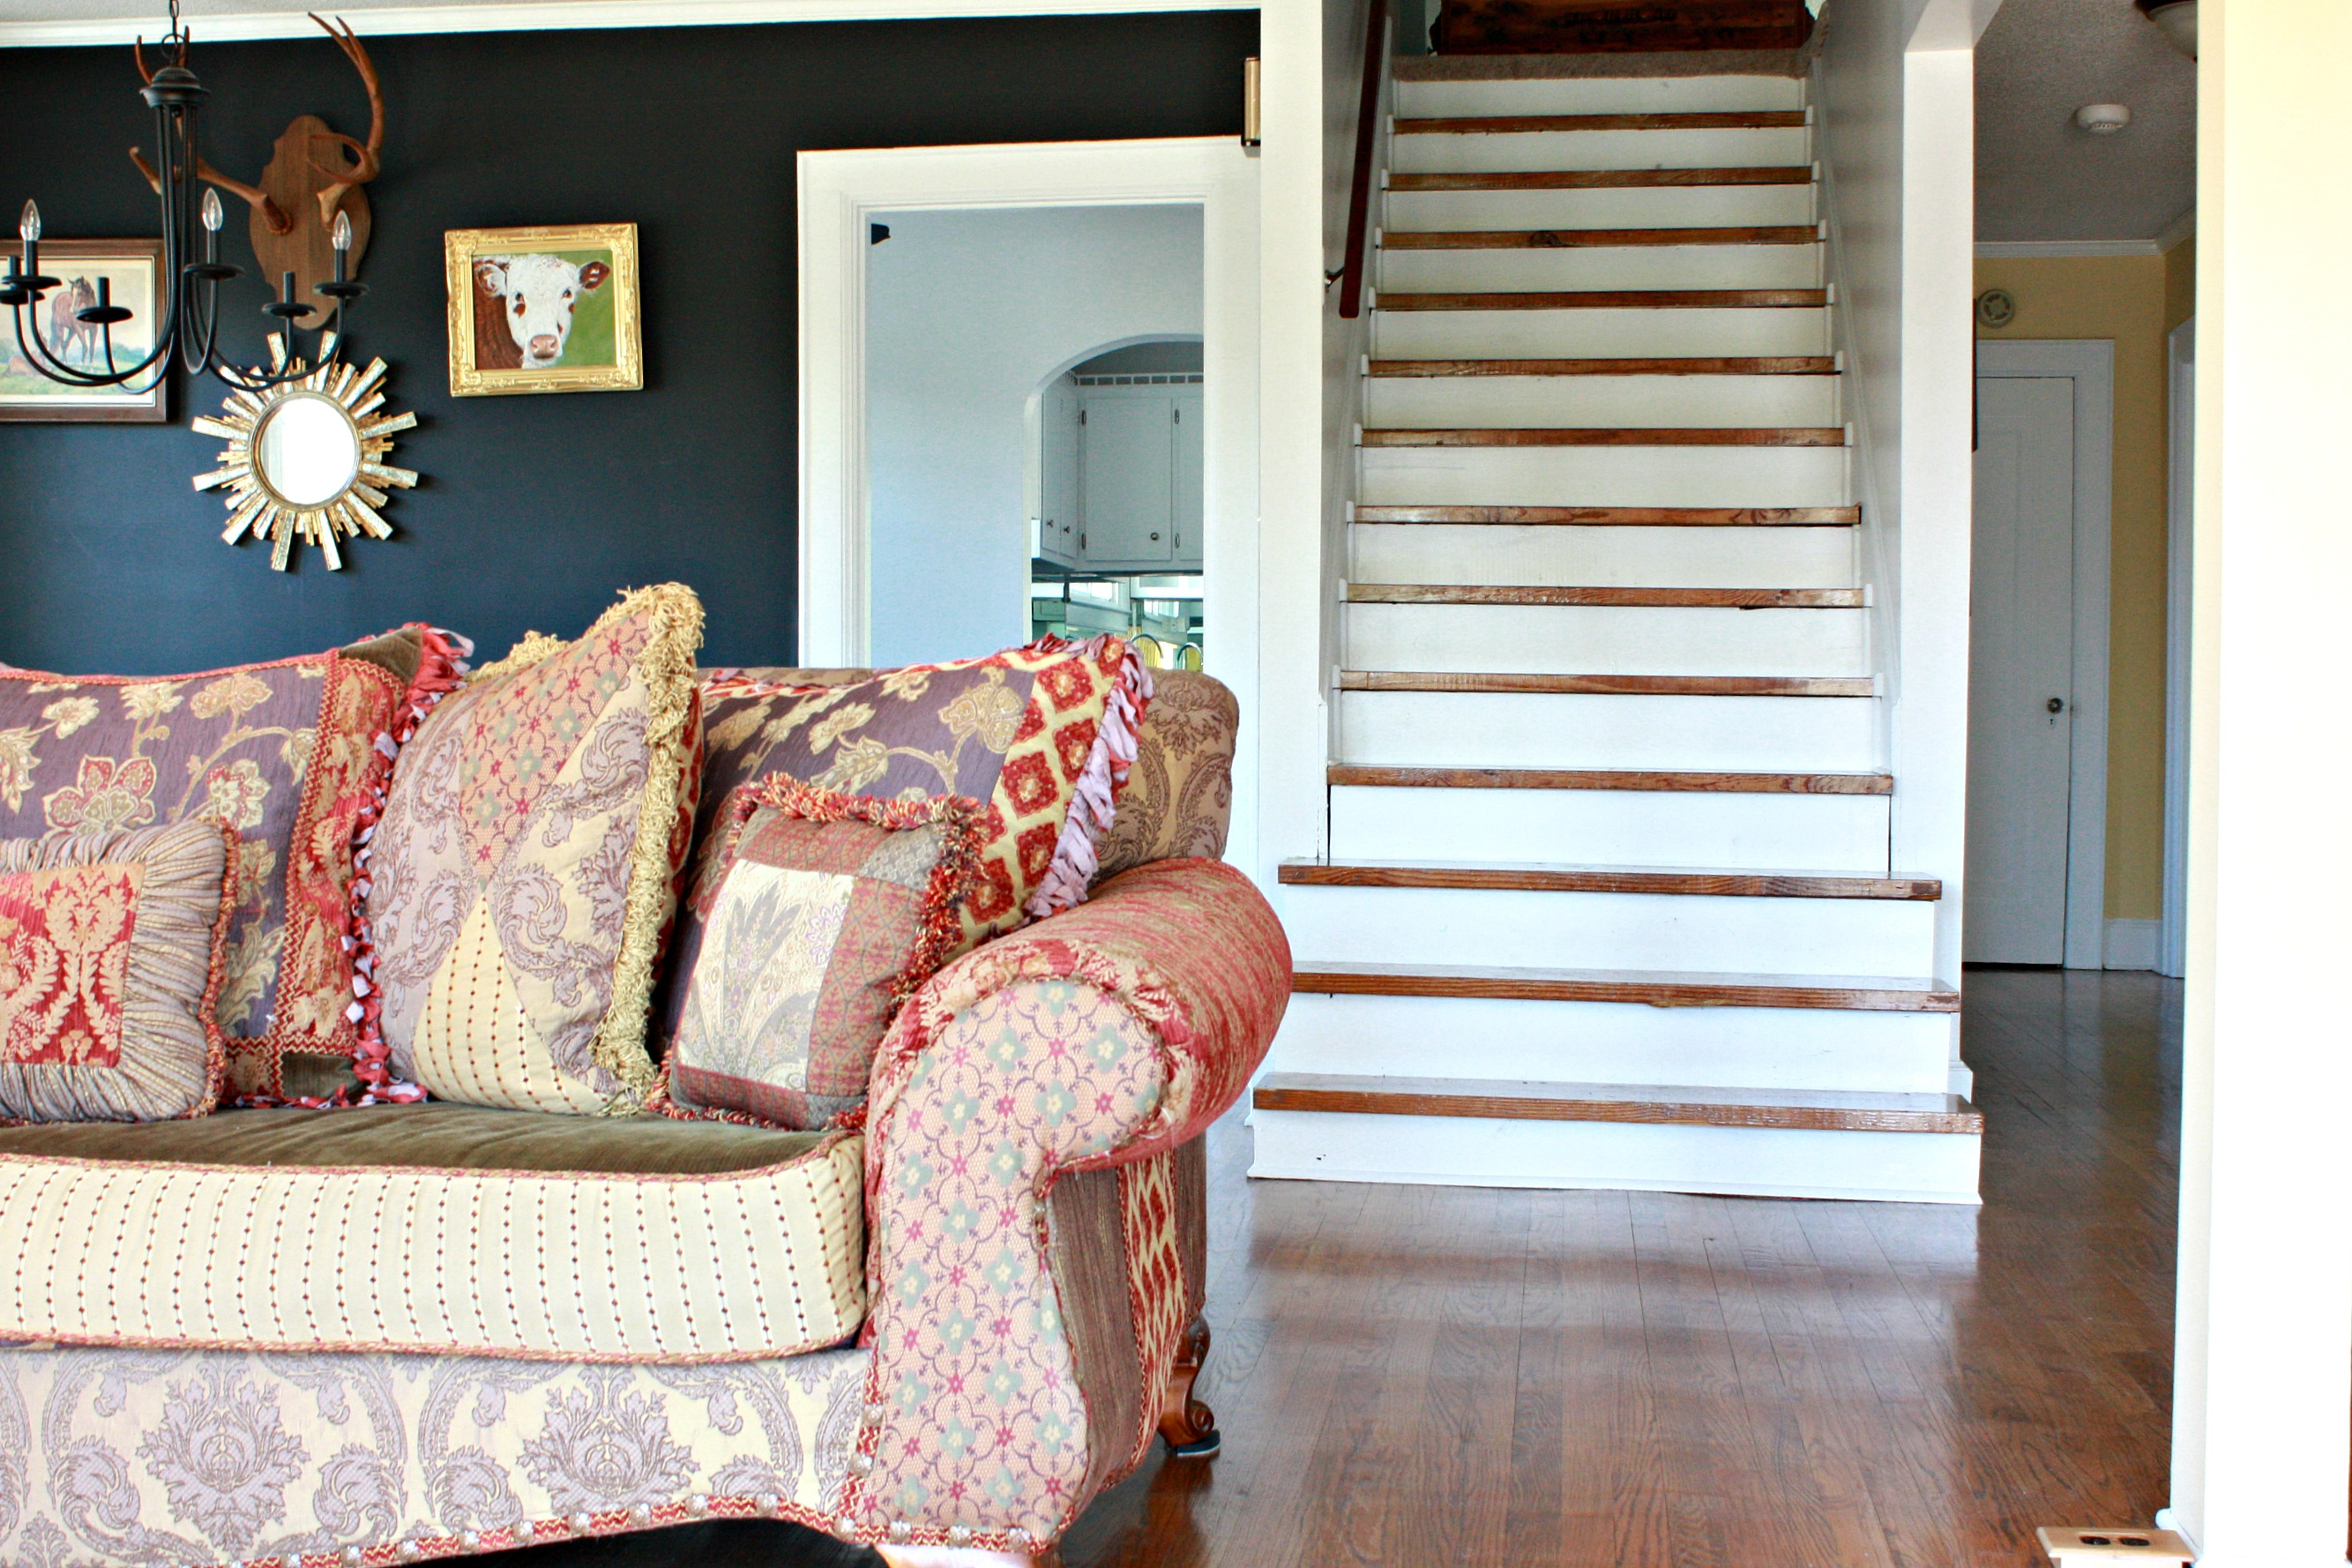 For sale by owner chattanooga tn for Chip and joanna gaines houses for sale